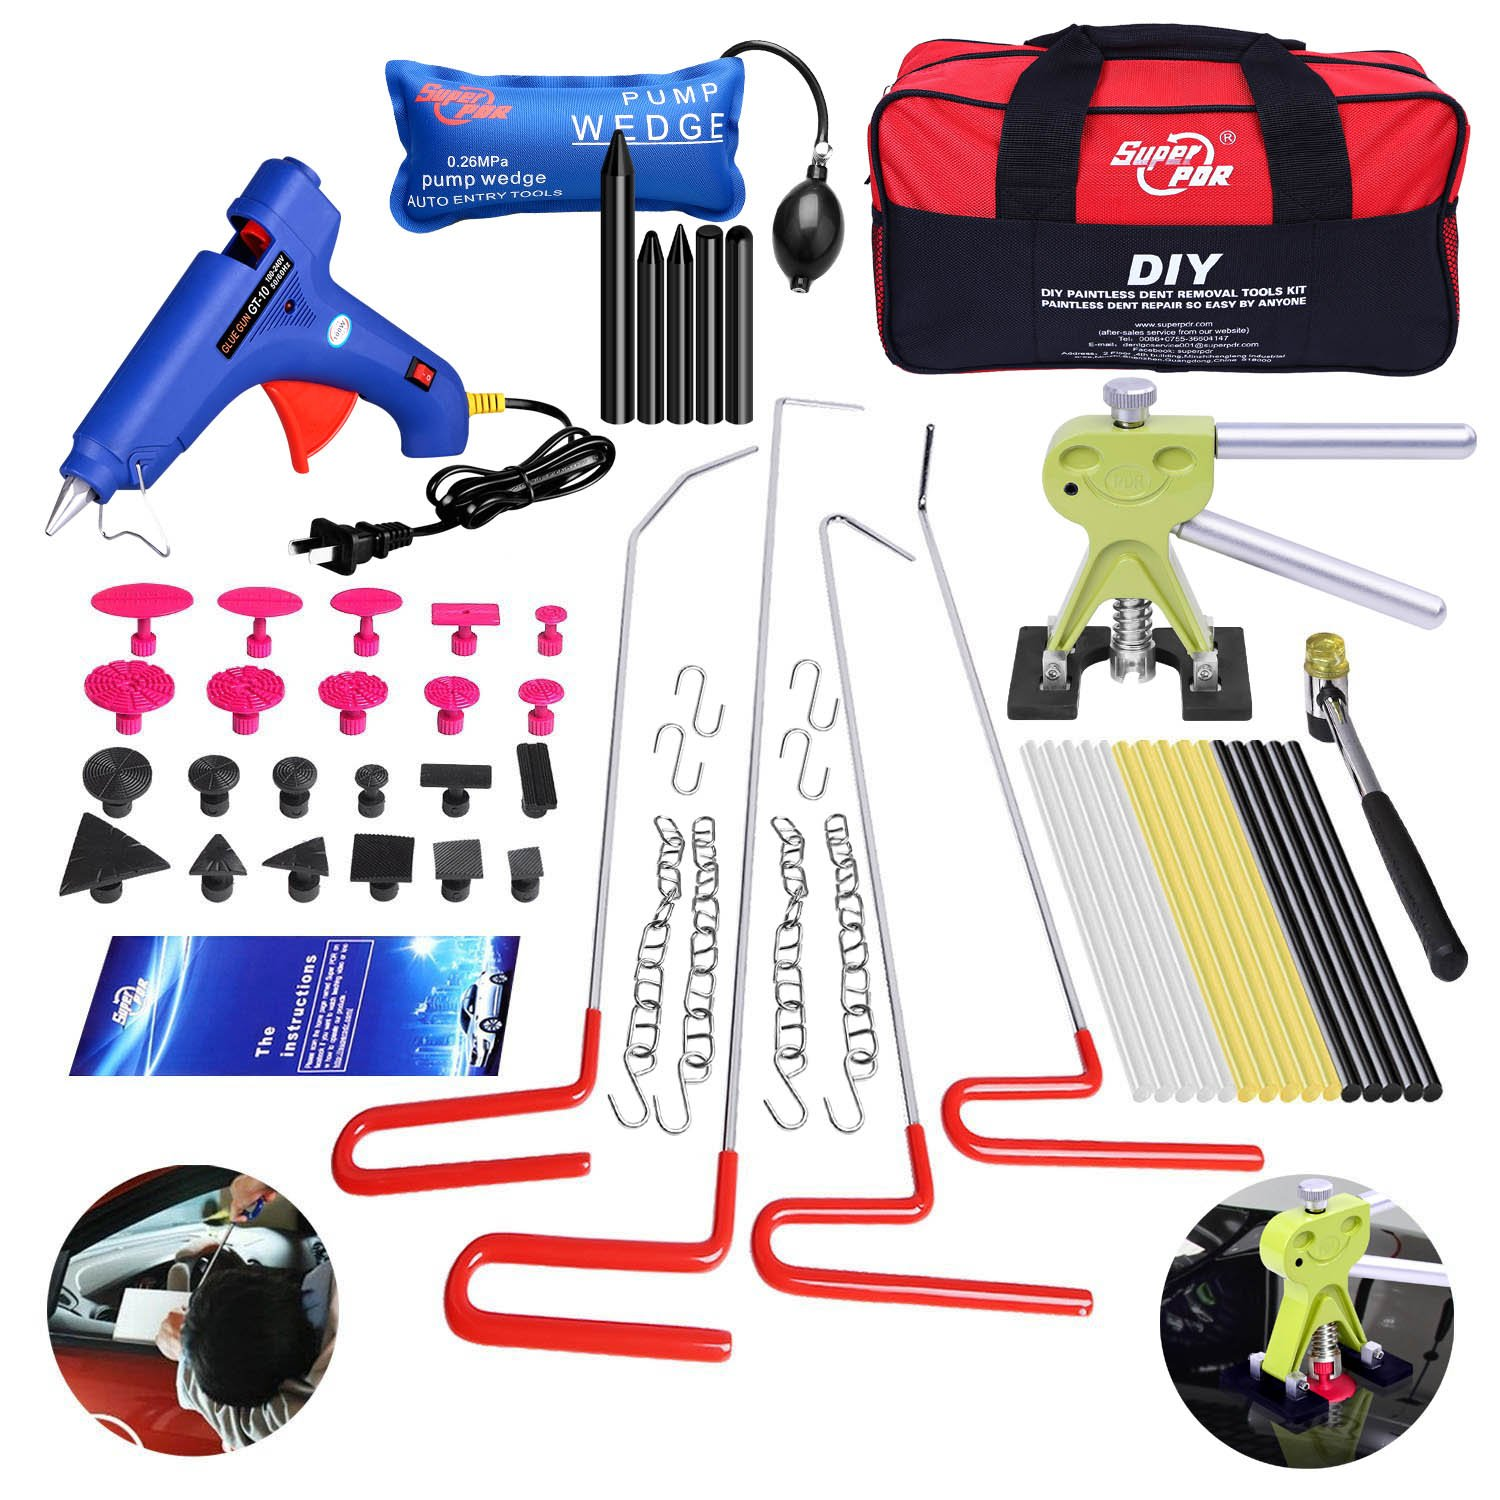 Cheap Dent And Ding Repair Kit, find Dent And Ding Repair Kit deals